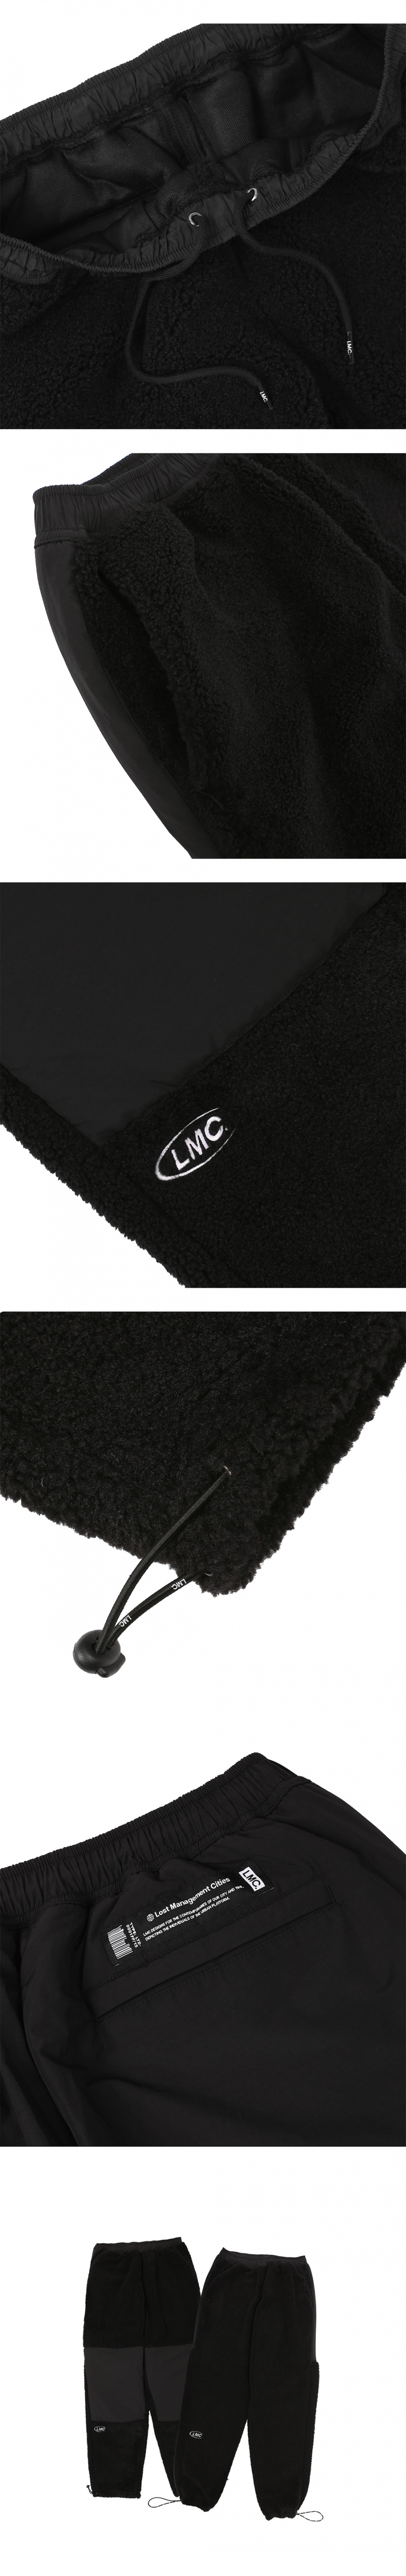 엘엠씨(LMC) LMC BOA FLEECE DOUBLE KNEE PANTS black